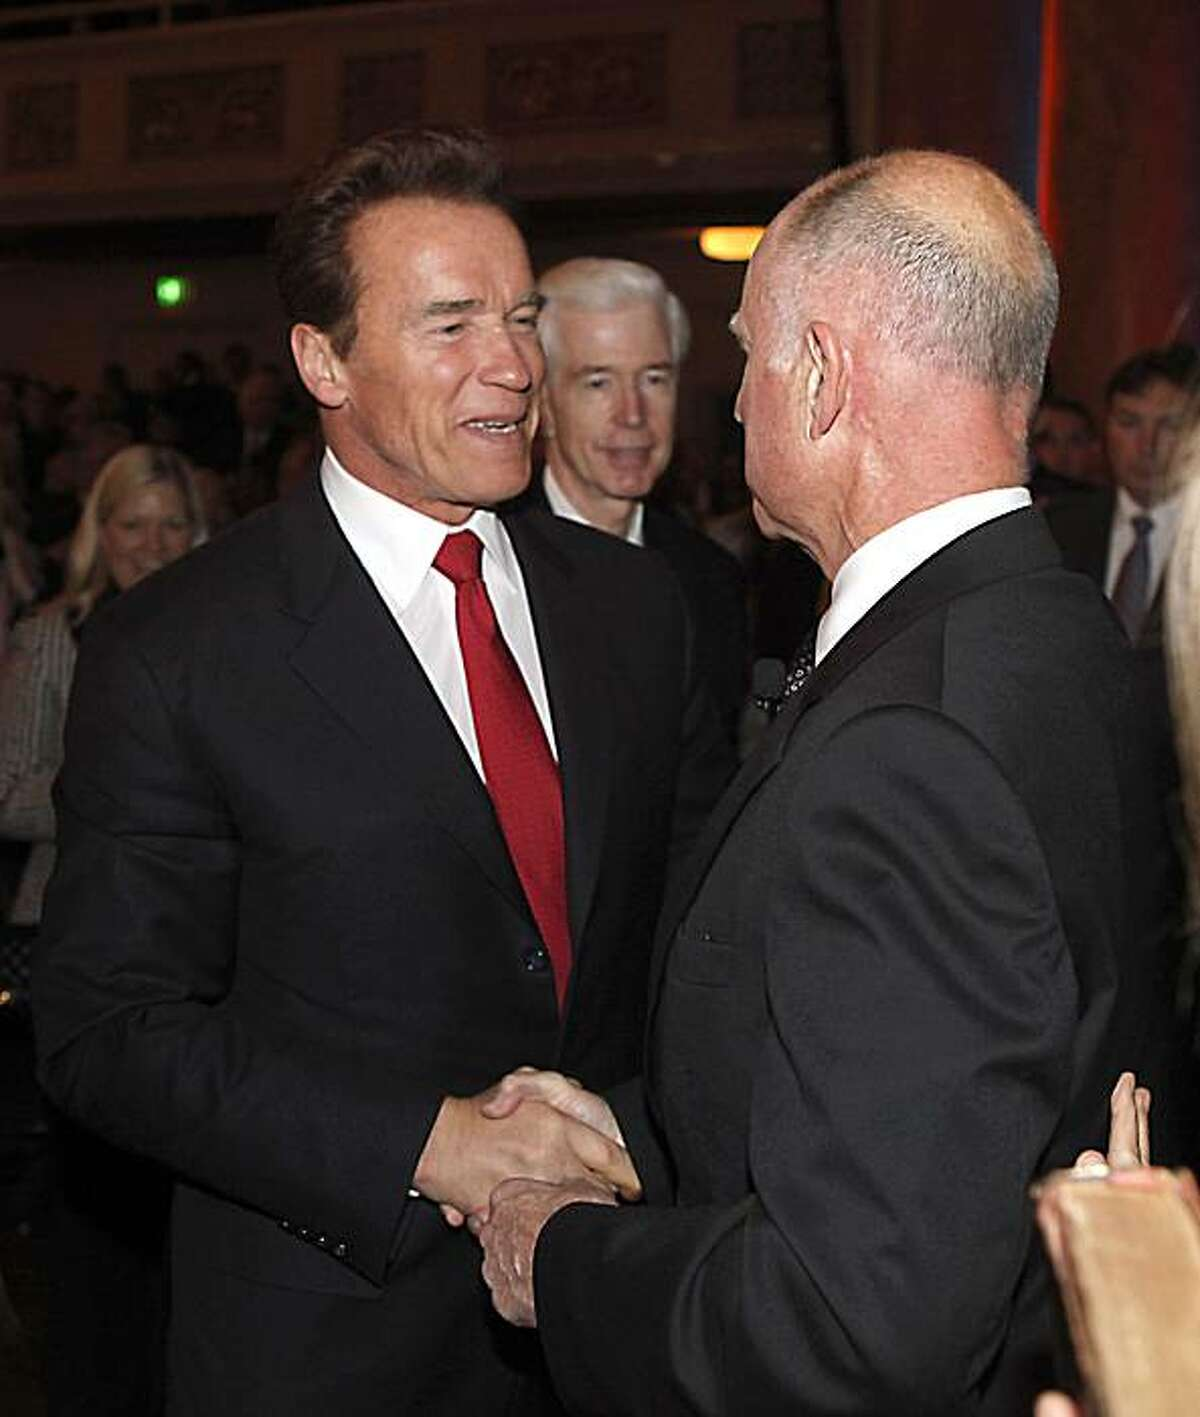 Outgoing Governor Arnold Schwarzenegger, left, congratulates his successor, Jerry Brown after Brown was sworn in as the 39th Governor of California in Sacramento, Calif. Monday, Jan. 3, 2011. Former Governor Gray Davis is seen in the center.